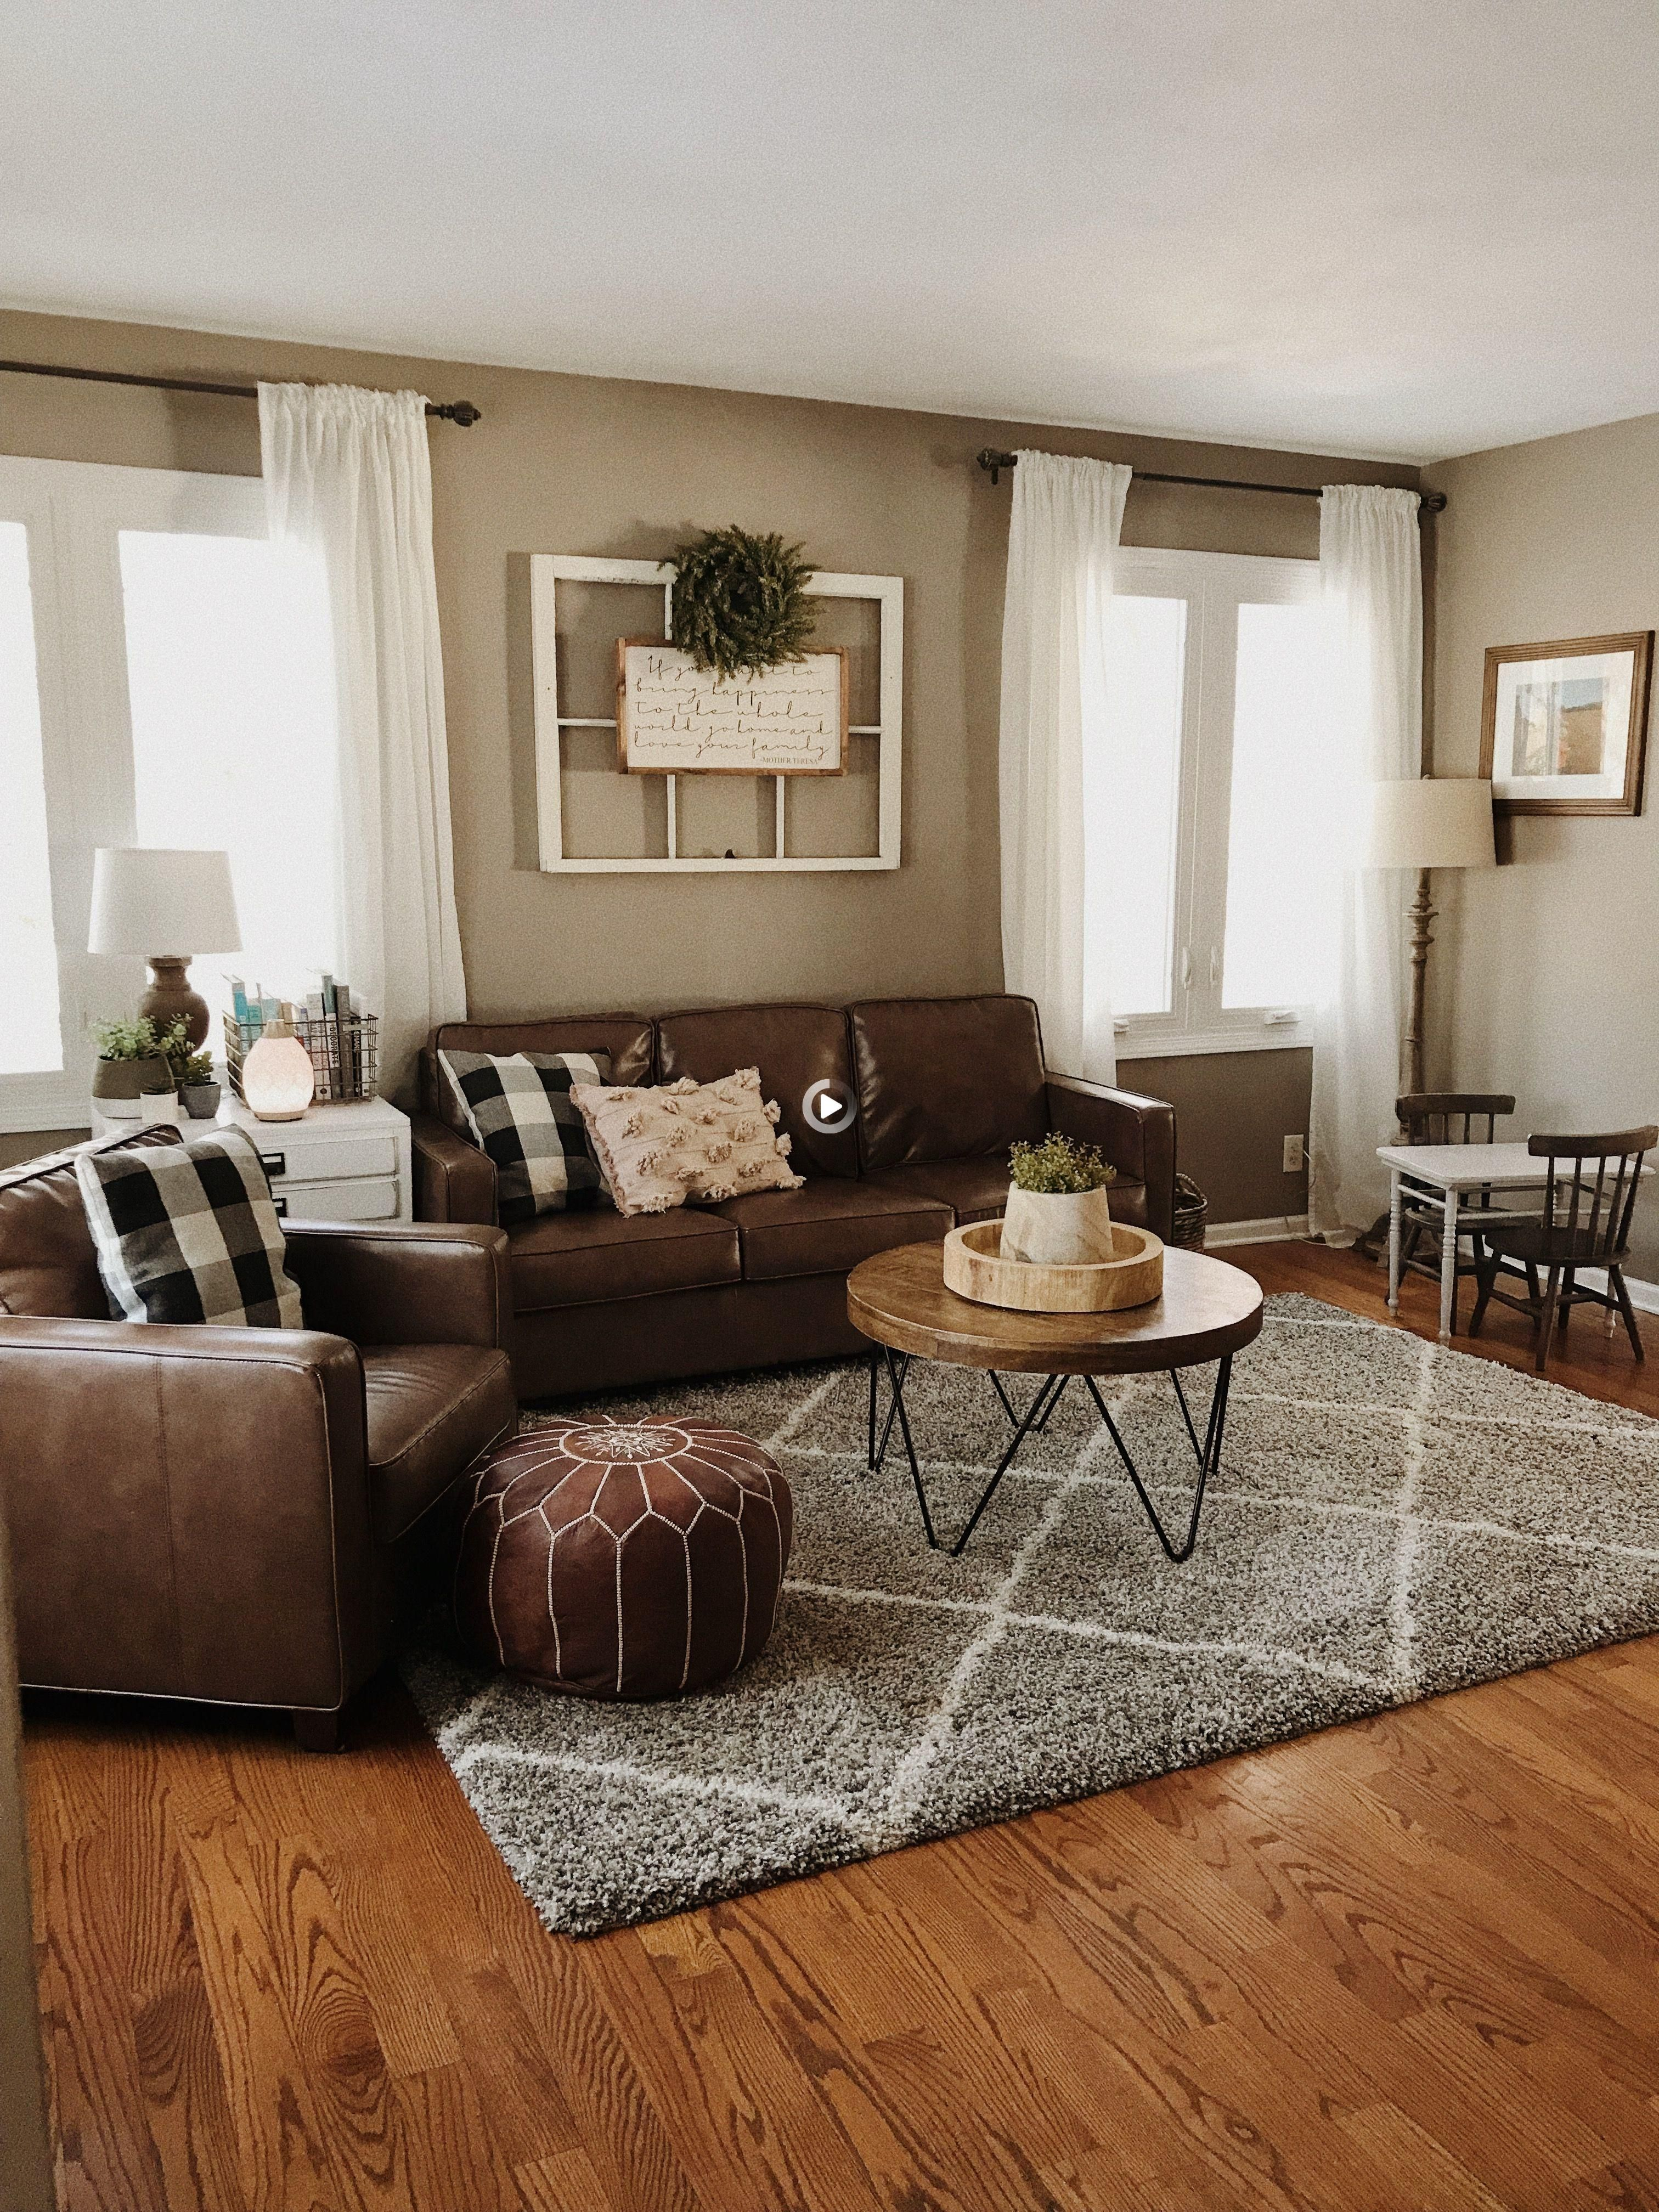 37 Brown Living Room Ideas Information, Brown Couch Living Room